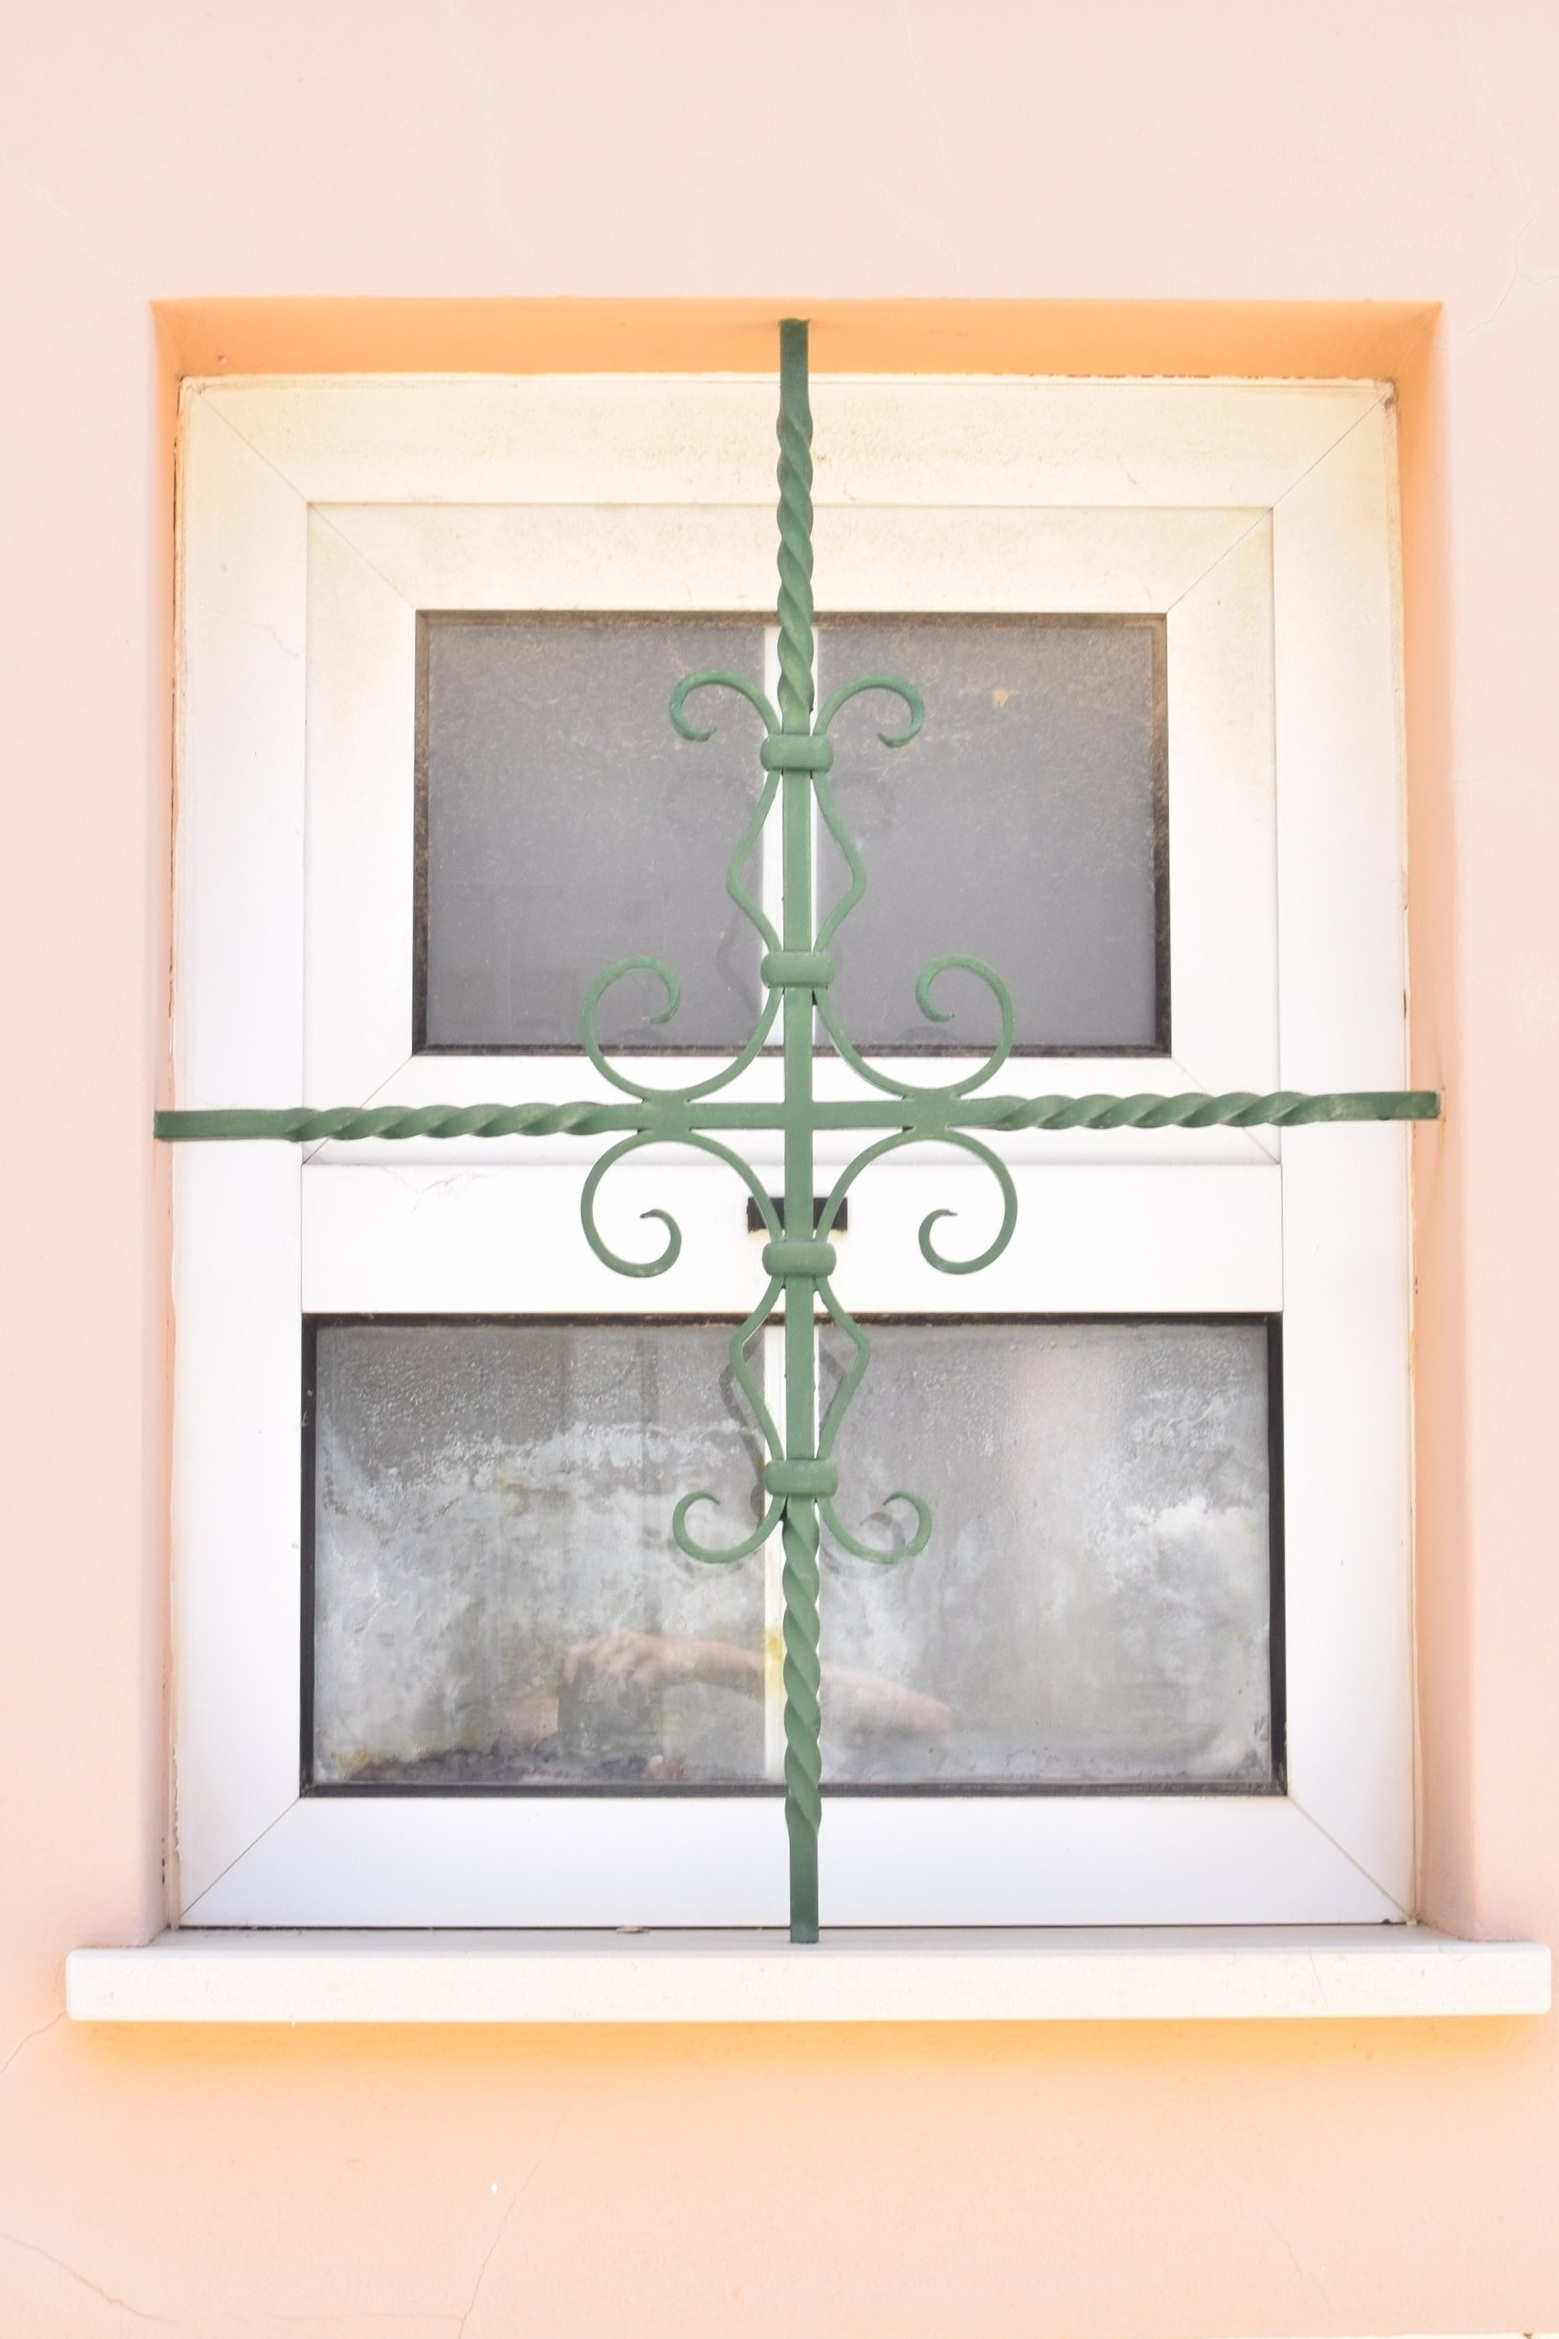 Peach windows | Finding colour inspiration in Lagos, Portugal | Soi 55 Travels8.JPG